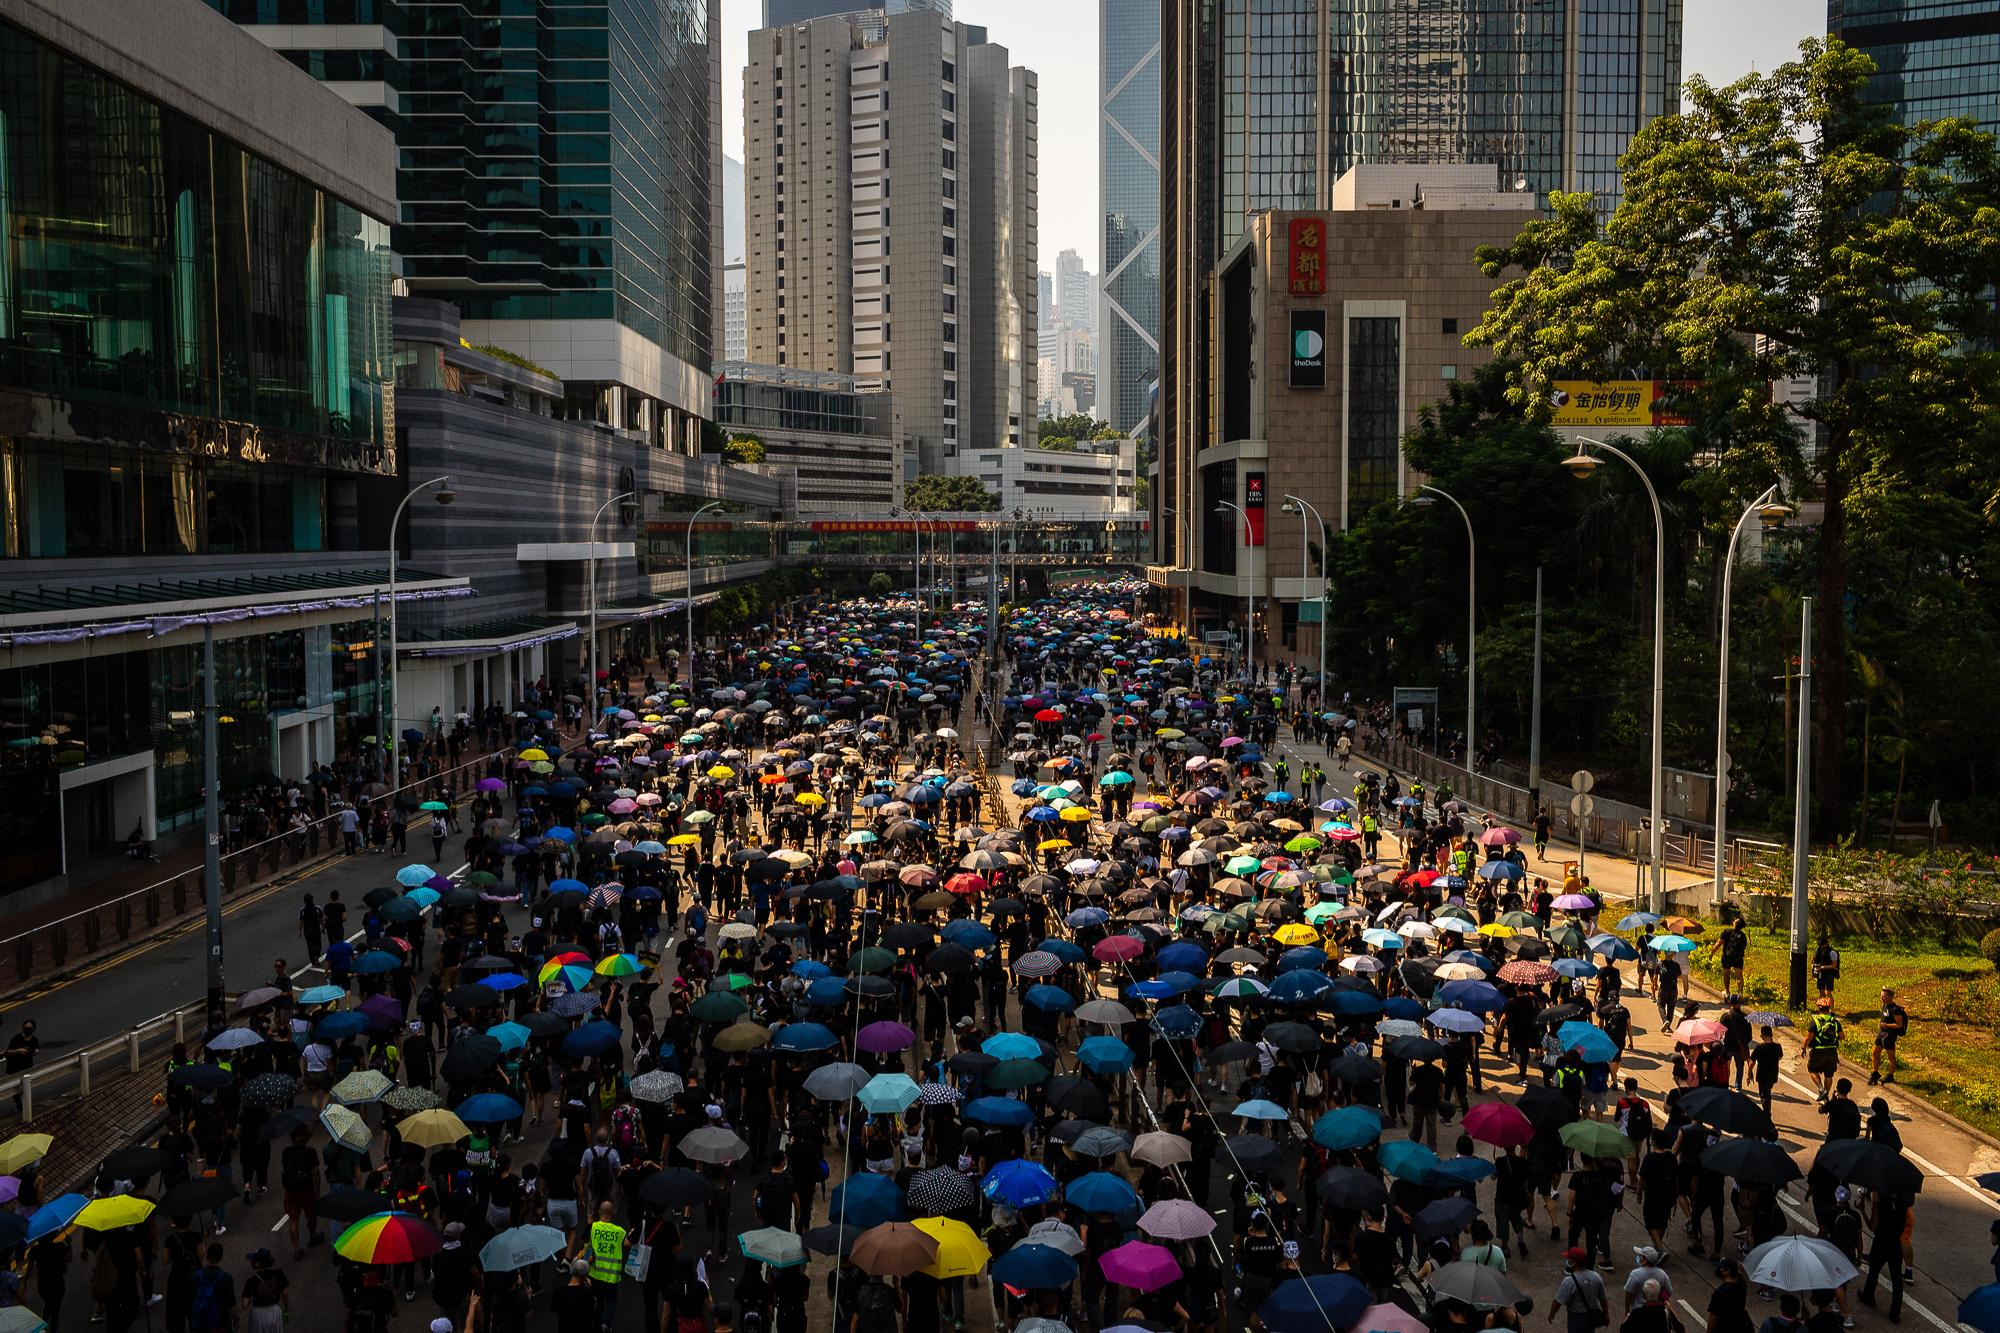 Demonstrators march with umbrellas during the protest in Hong Kong during the holiday marking 70 years of Communist rule in China began in Beijing.